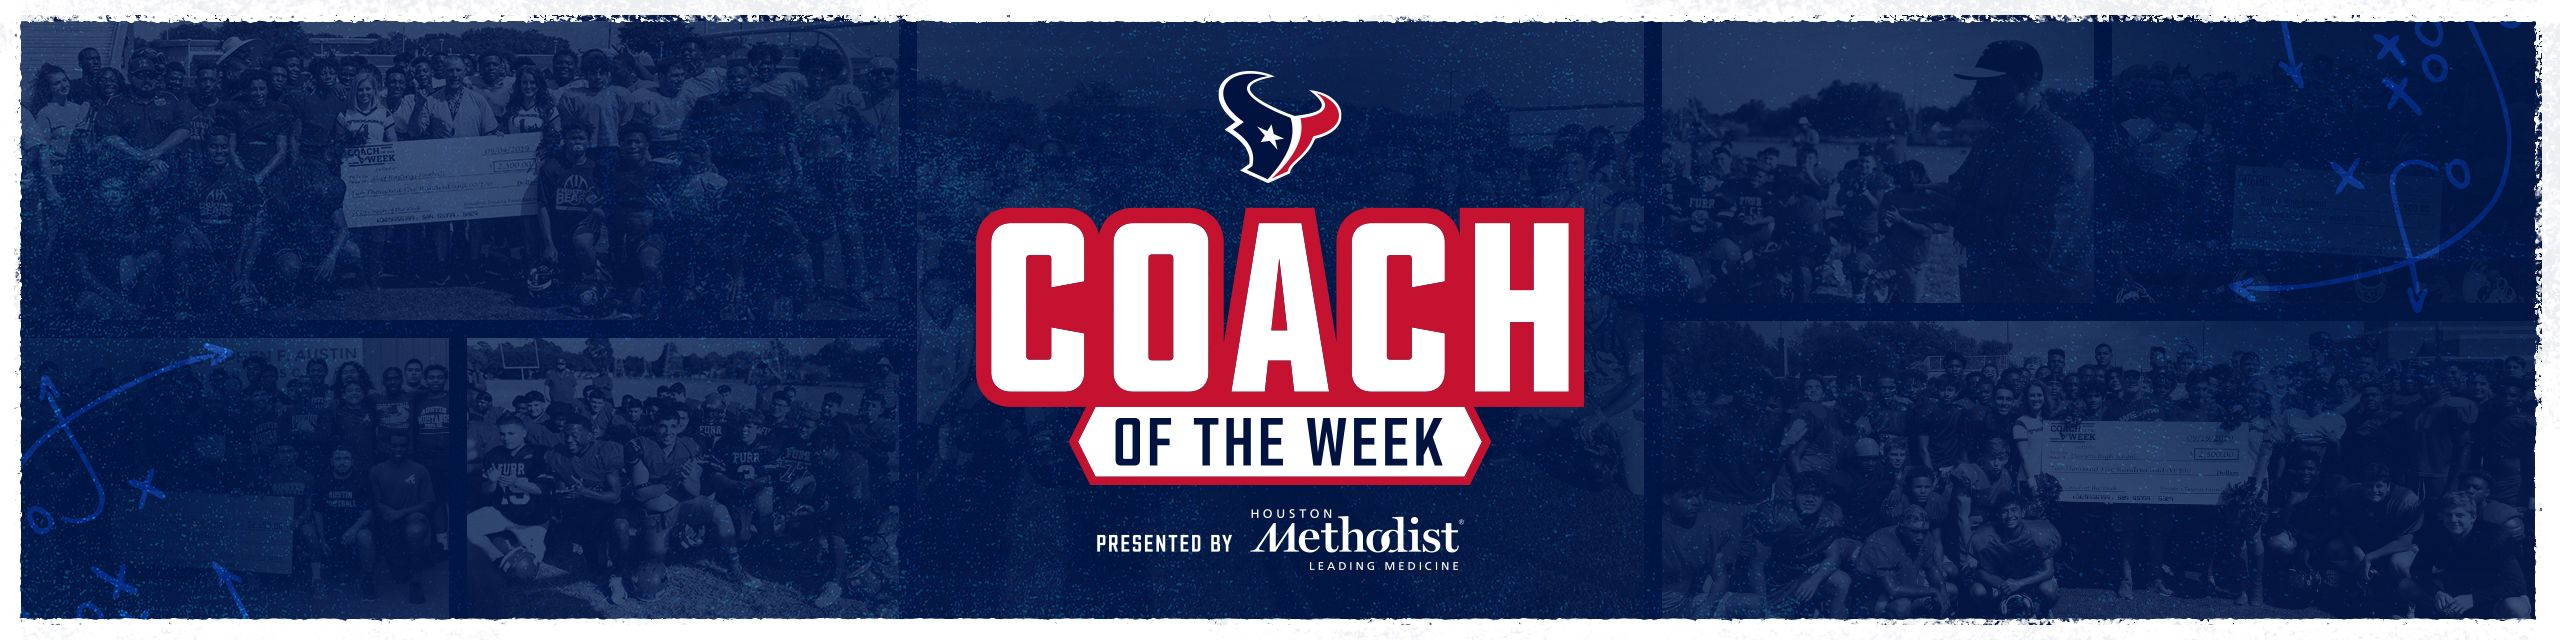 Coach of the Week. presented by Houston Methodist